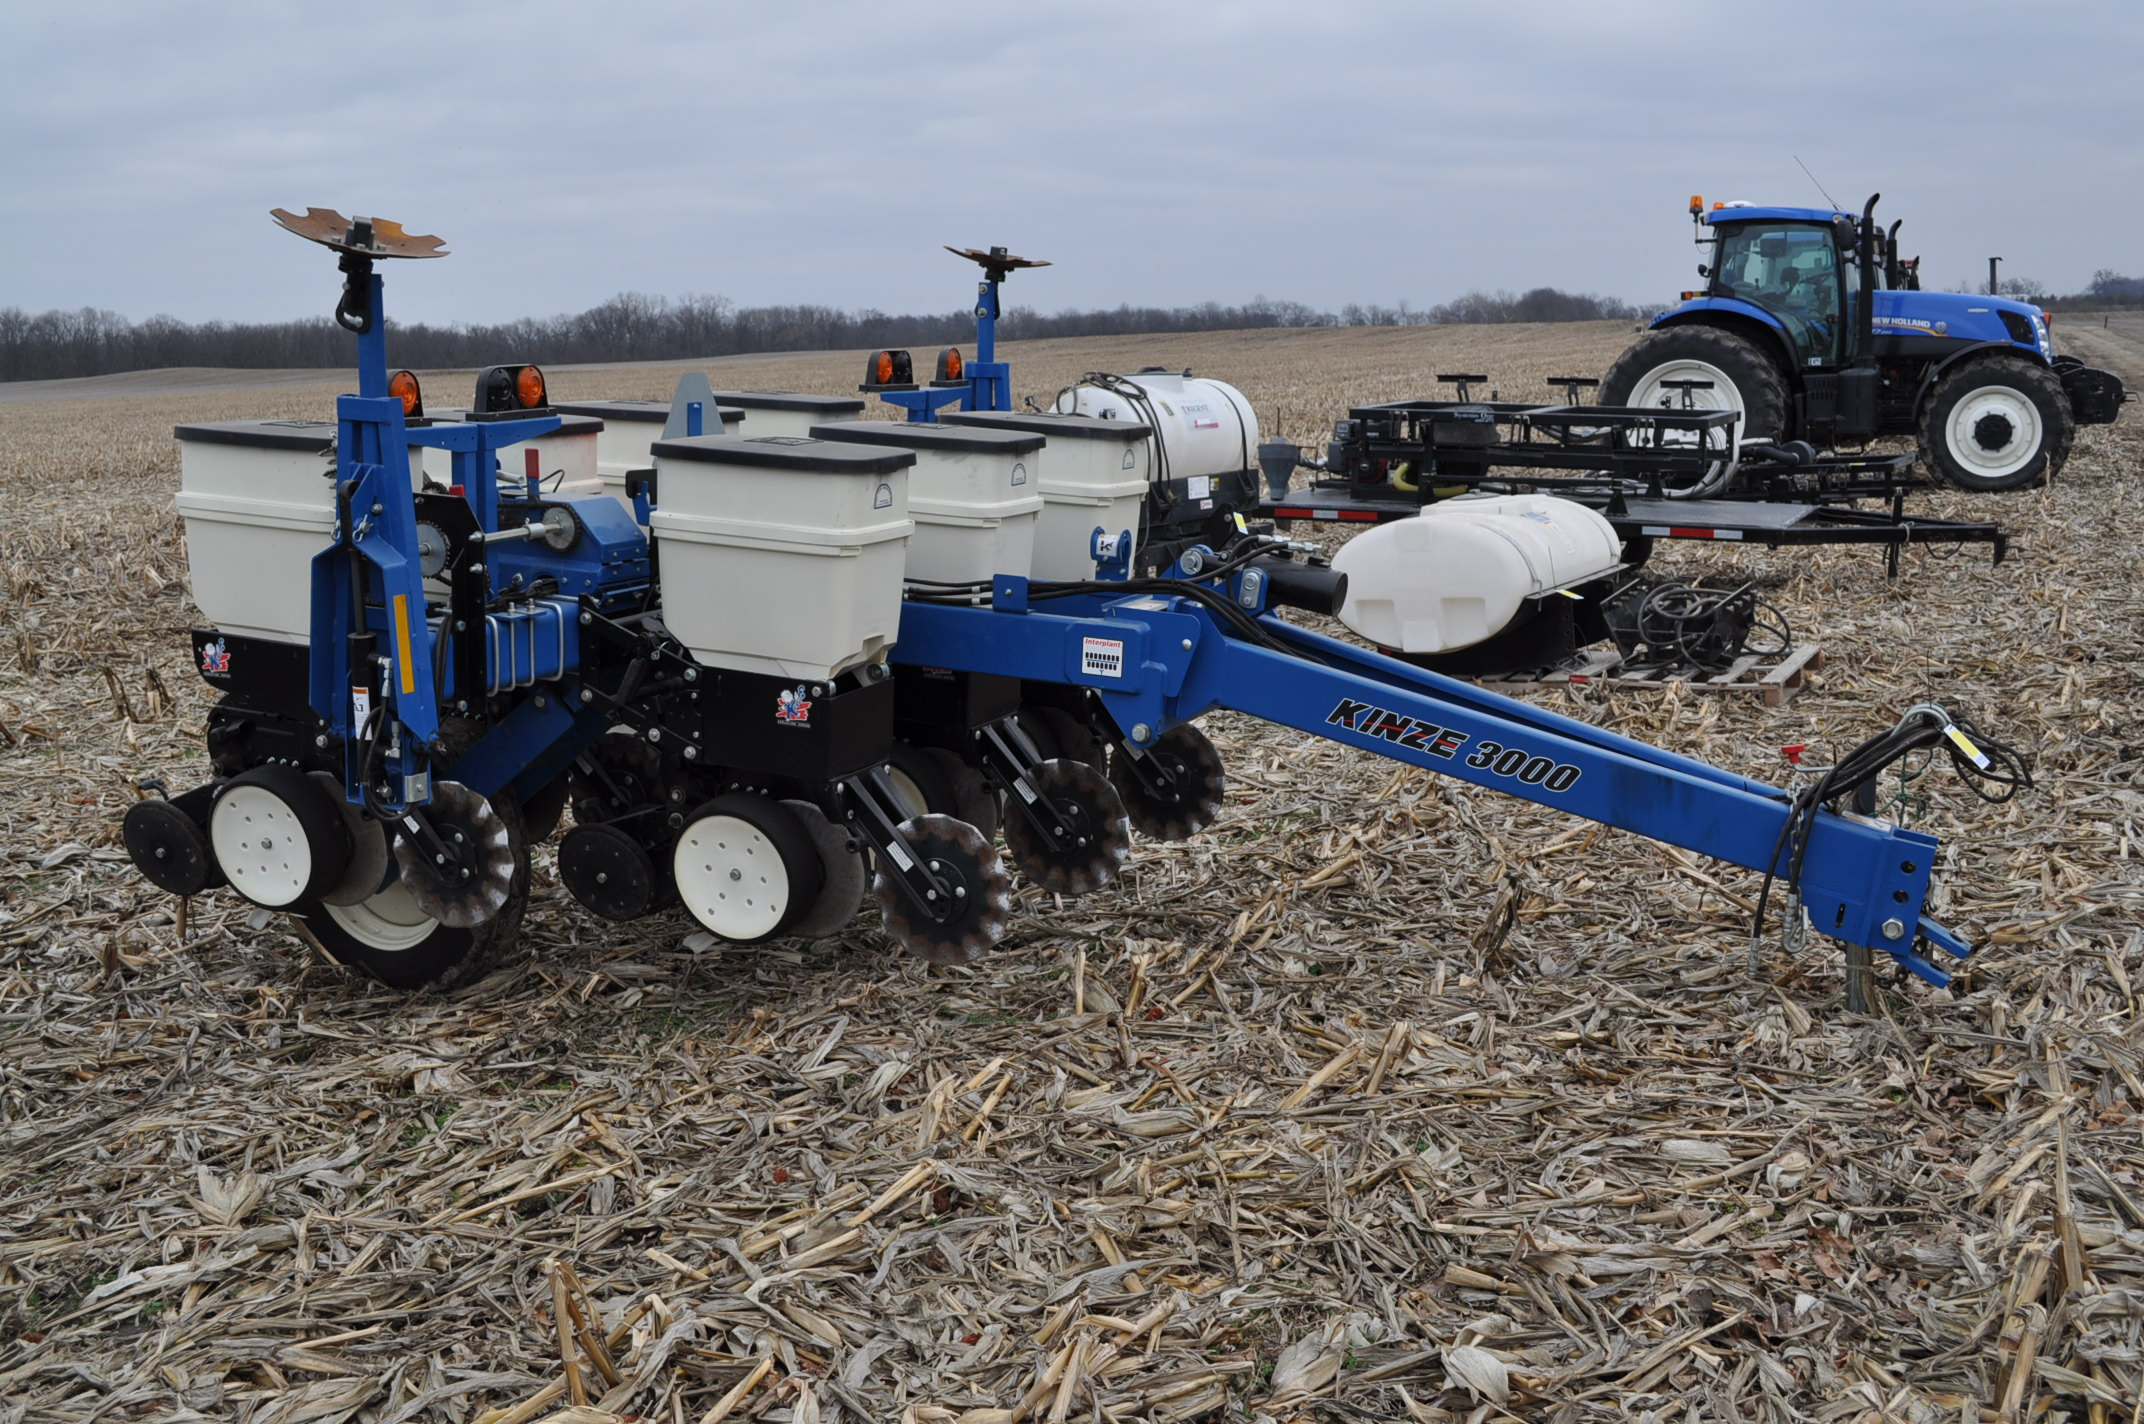 Kinze 3000 planter 4/7 planter, boxes, no-till, pull-type, ground drive, markers, rubber closing - Image 4 of 14